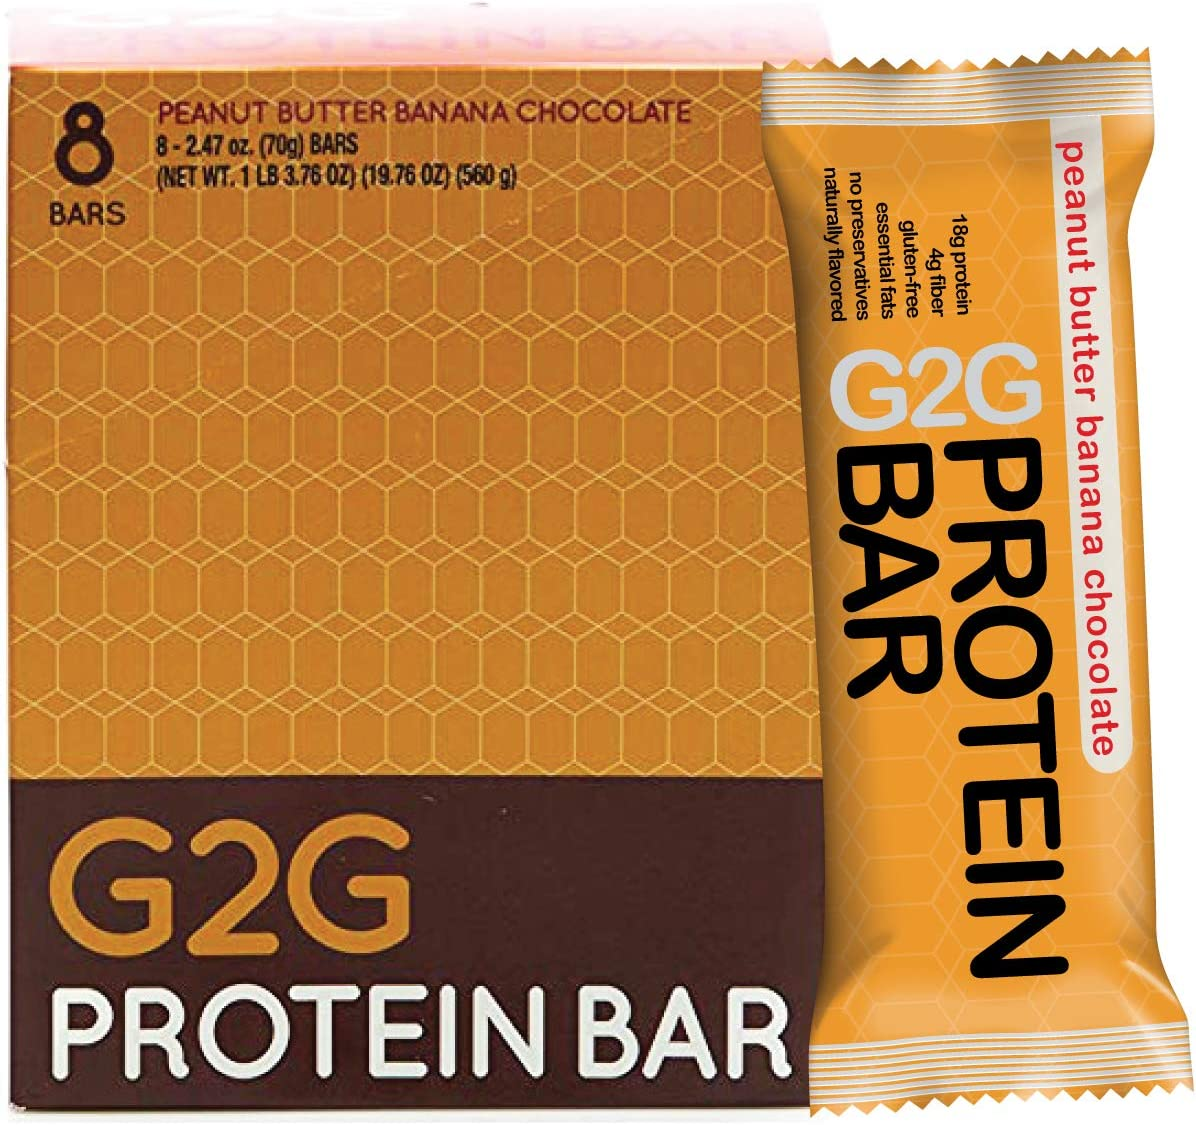 G2G Protein Bar, Peanut Butter Banana Chocolate Protein Bar, 8 Count Box